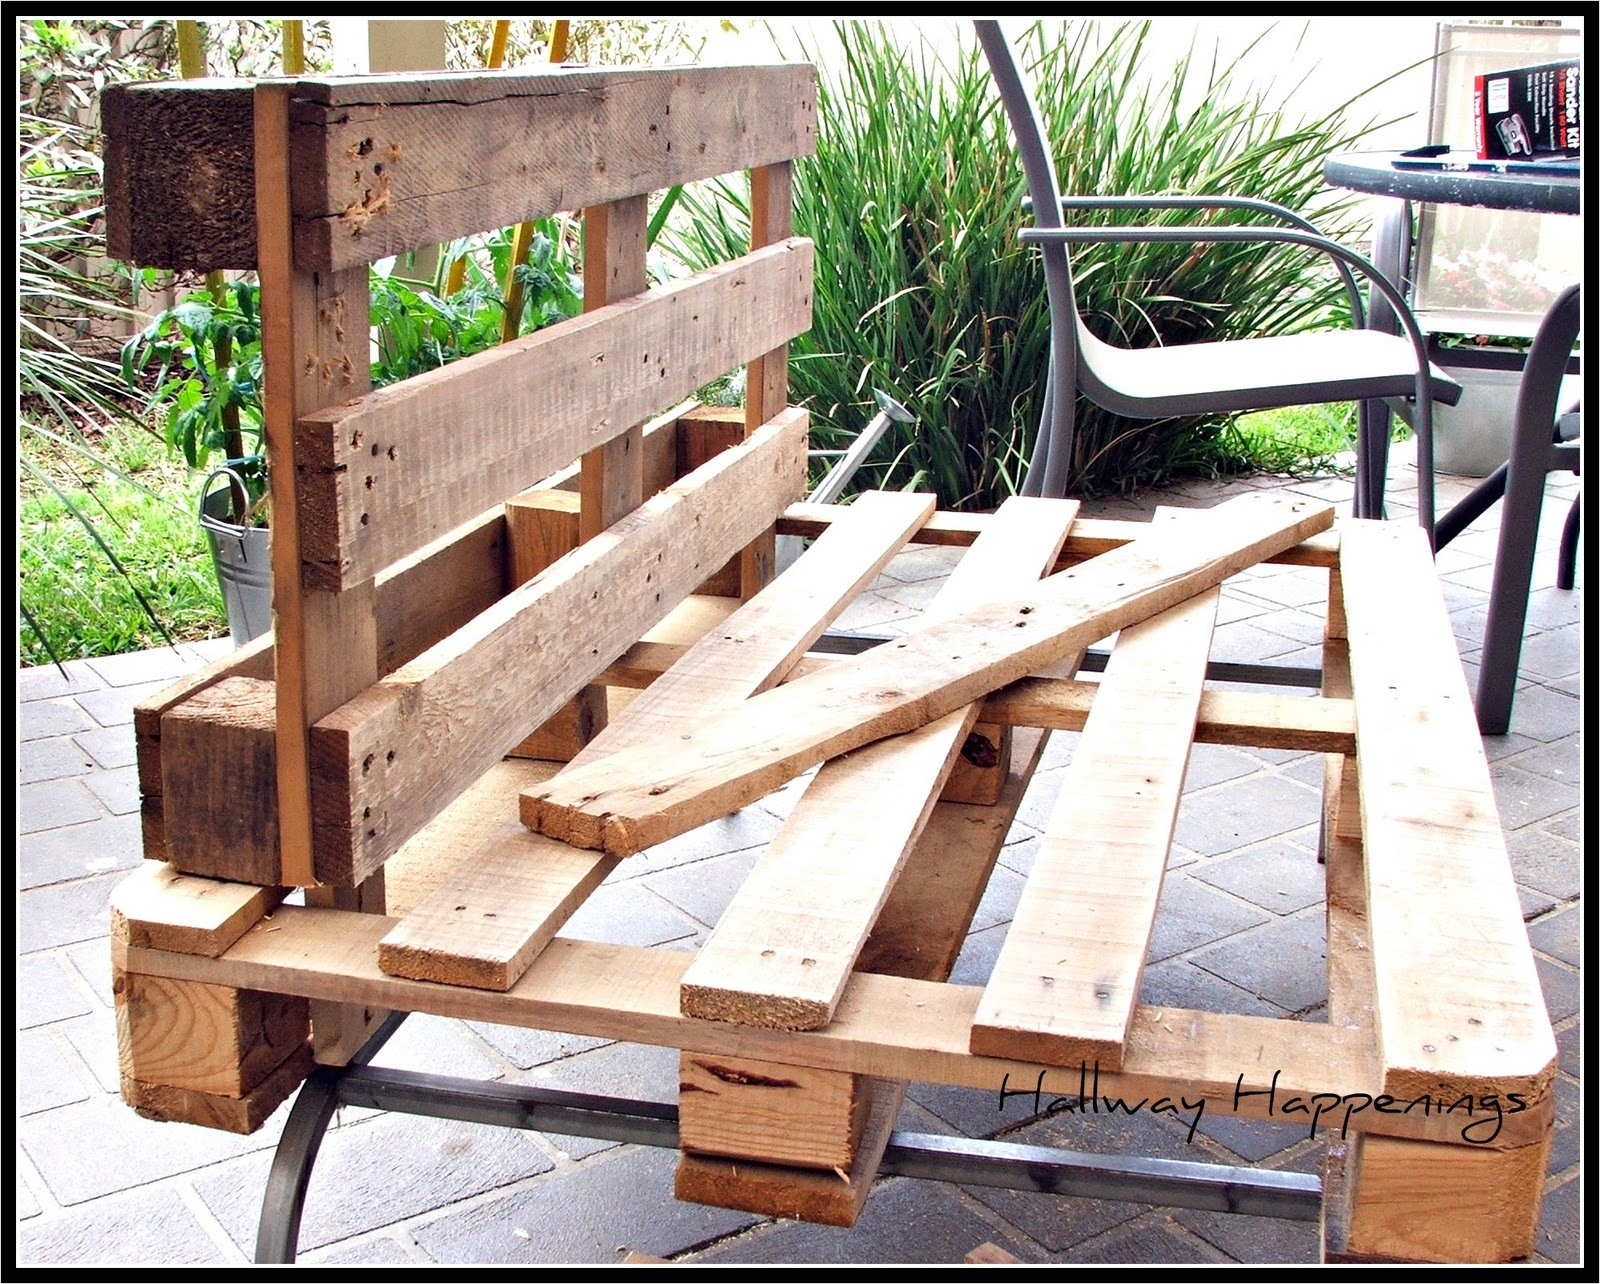 40 Diy Ideas Outdoor Furniture Made From Pallets 32 How to Make Pallet Patio Furniture Elegant S Outdoor Furniture Made From Pallets Ahfhome 6